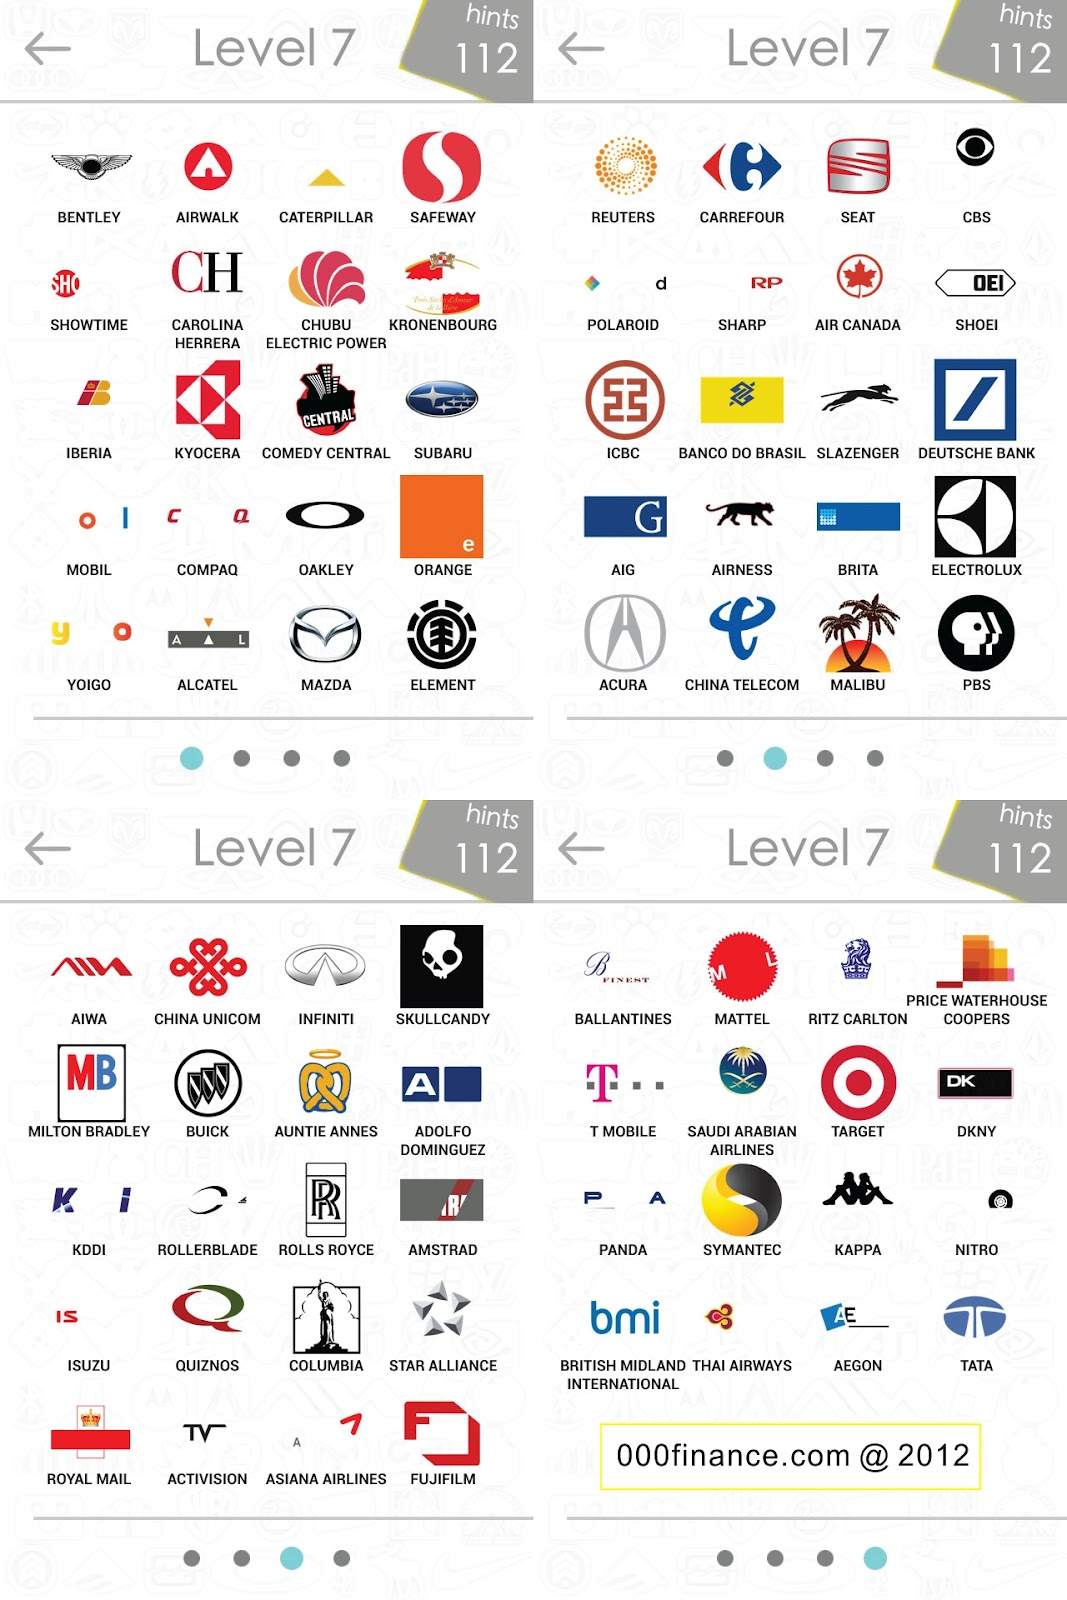 Logos Answers Level 7 : logos, answers, level, Logos, Answers, IPhone,, IPad,, Android, Answer, Level